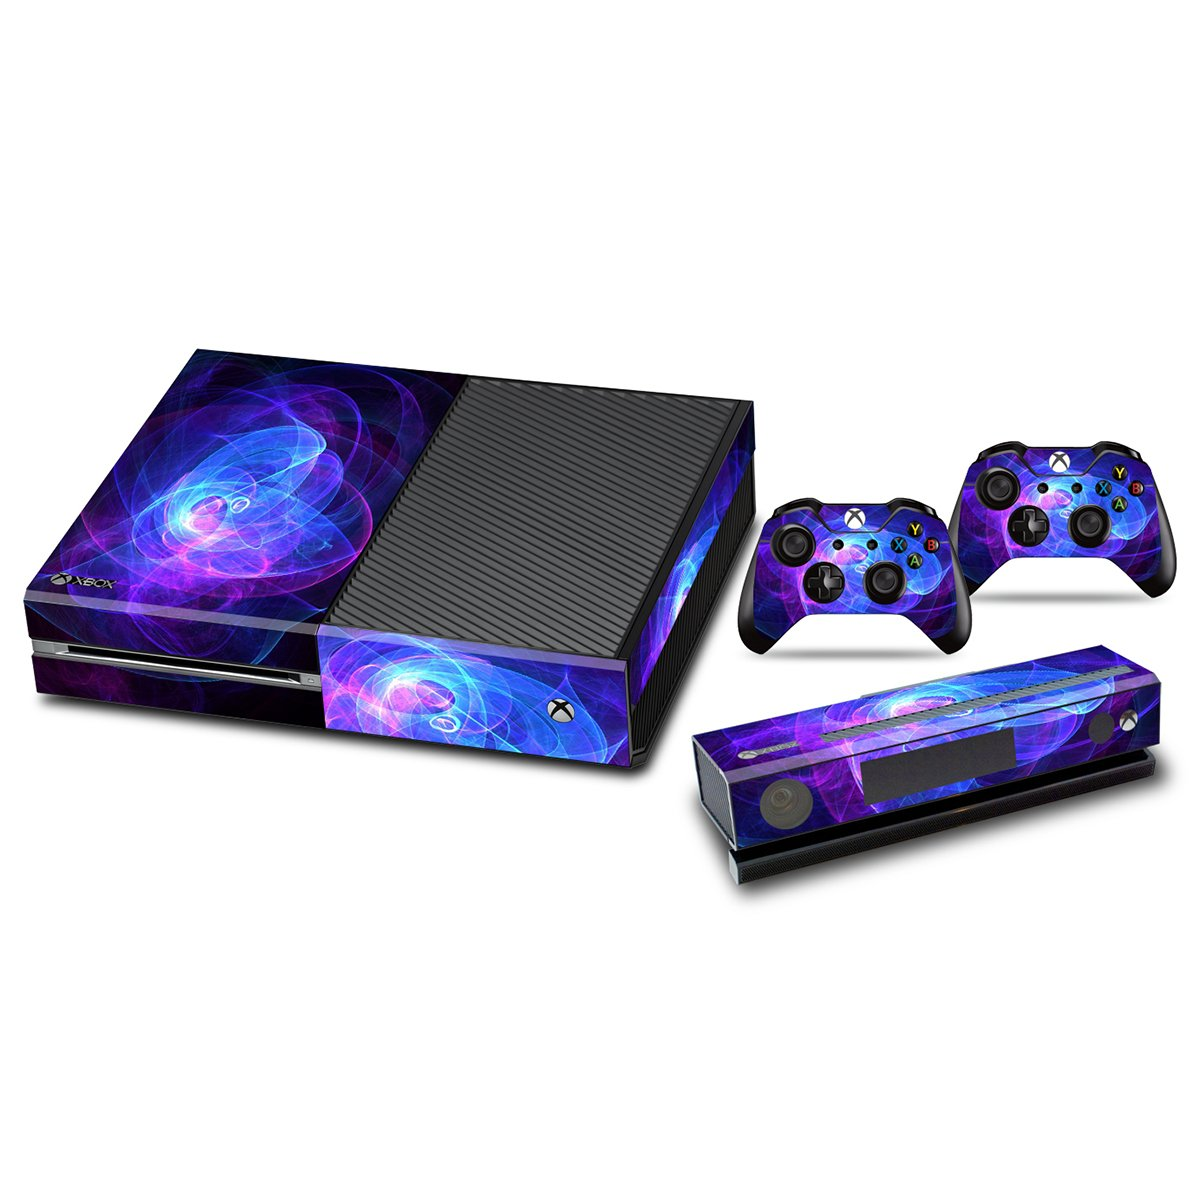 Stickers for Xbox One Console Skins Xbox One Games Accessories Sticker  Decals with Two Free Wireless Controller Decals - Blue Purple Lines:  Amazon.co.uk: PC ...